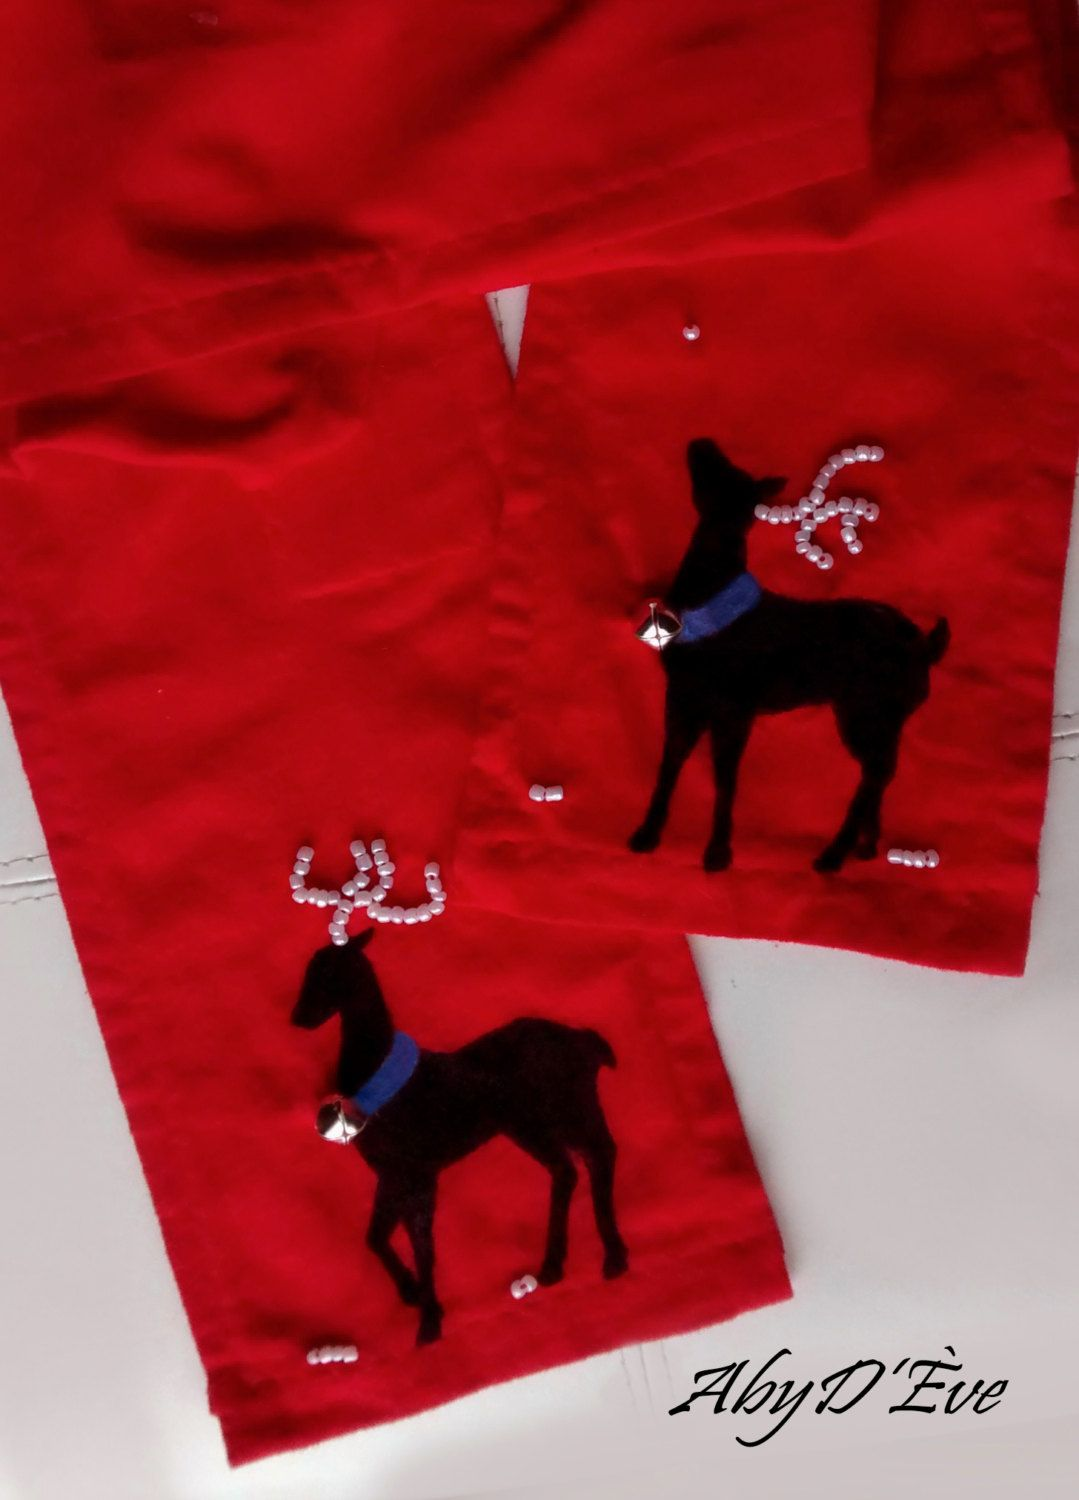 Reindeer - Unique scarf decorated by hand. We use specialized pens, buttons, pearls and hand-embroidery. - pinned by pin4etsy.com